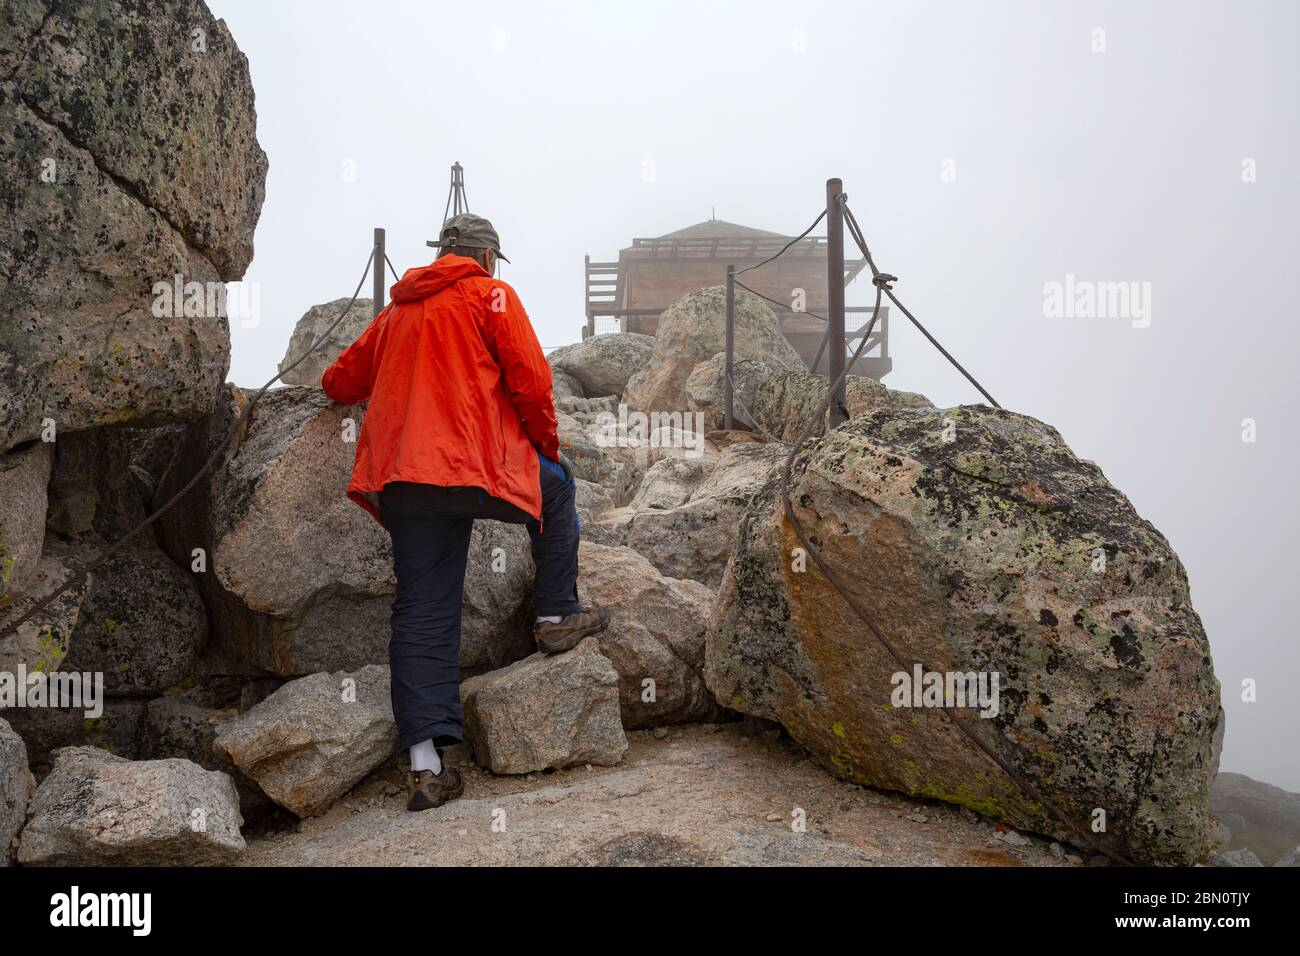 WY04219-00...WYOMING - Hiker approaching the Black Mountain Lookout on a foggy day in the Bighorn National Forest. Stock Photo